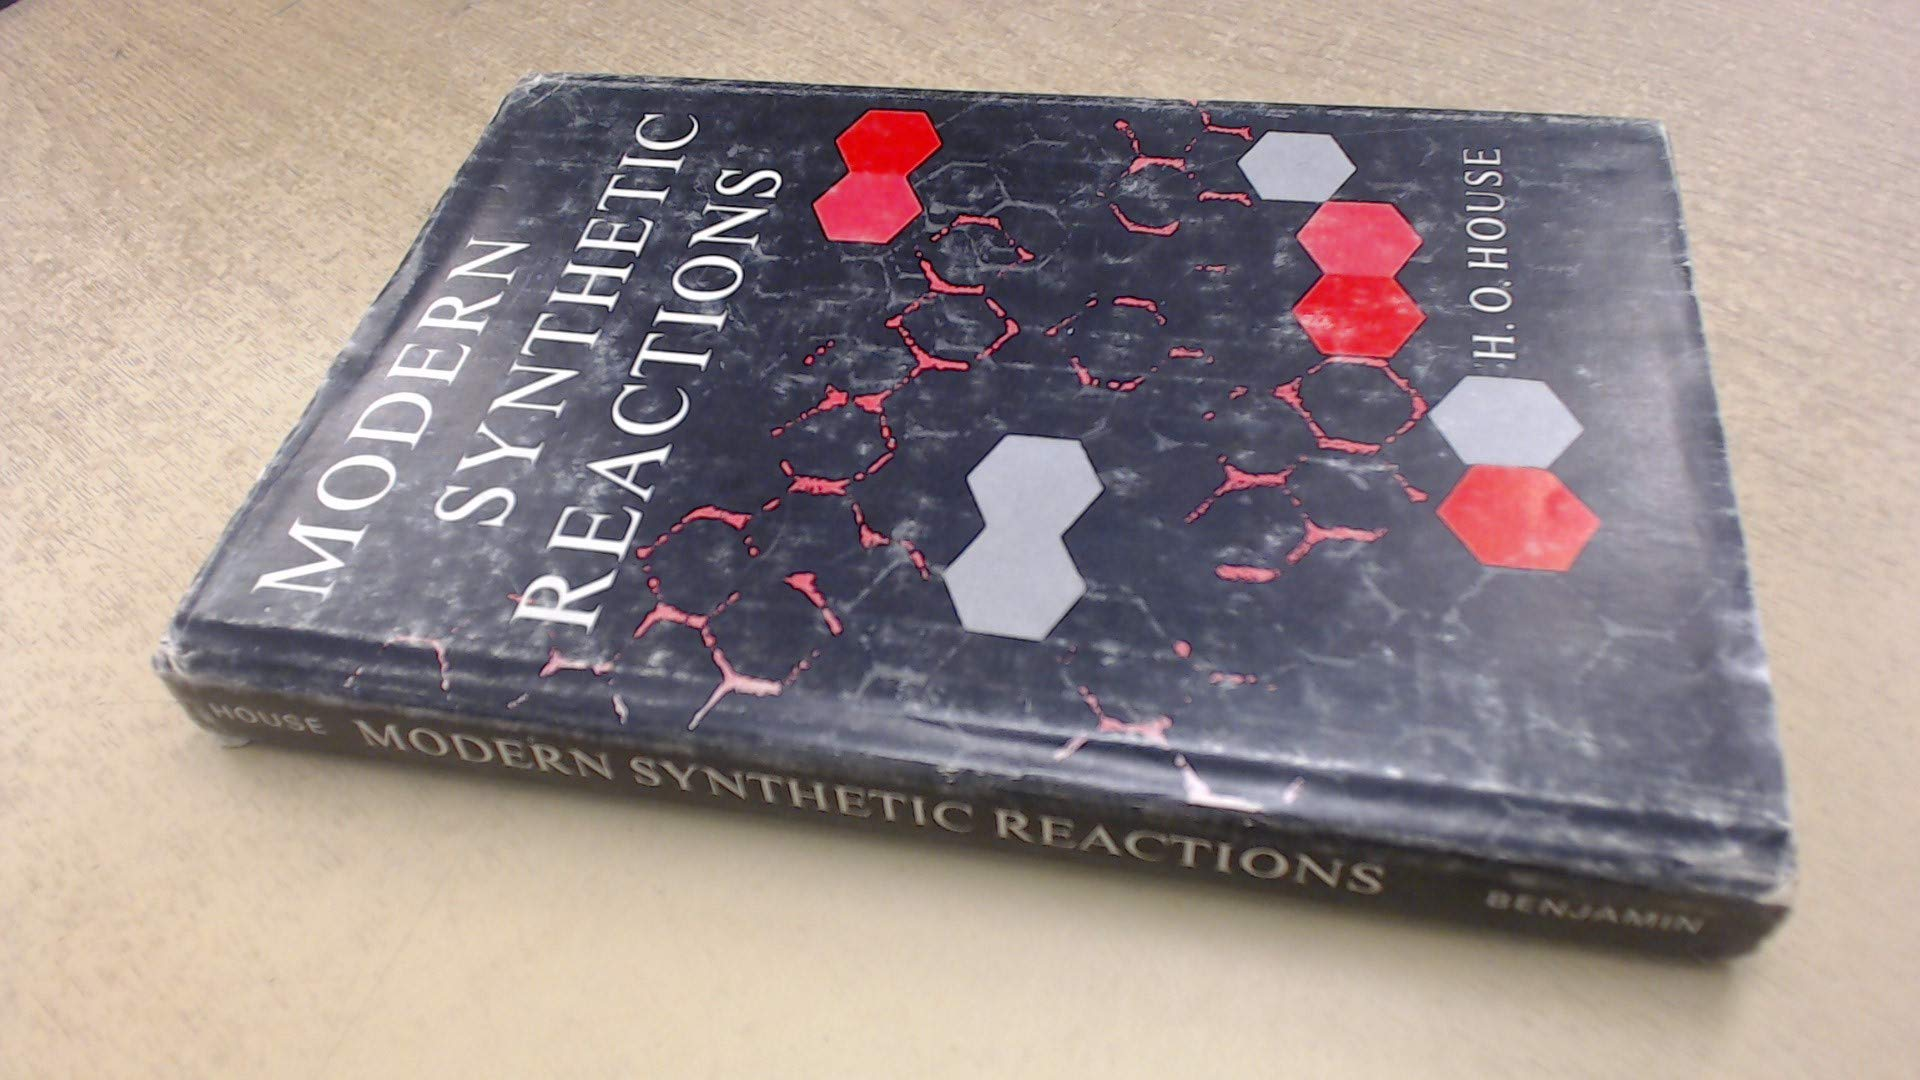 Modern synthetic reactions the organic chemistry monograph series hardcover december 1 1965